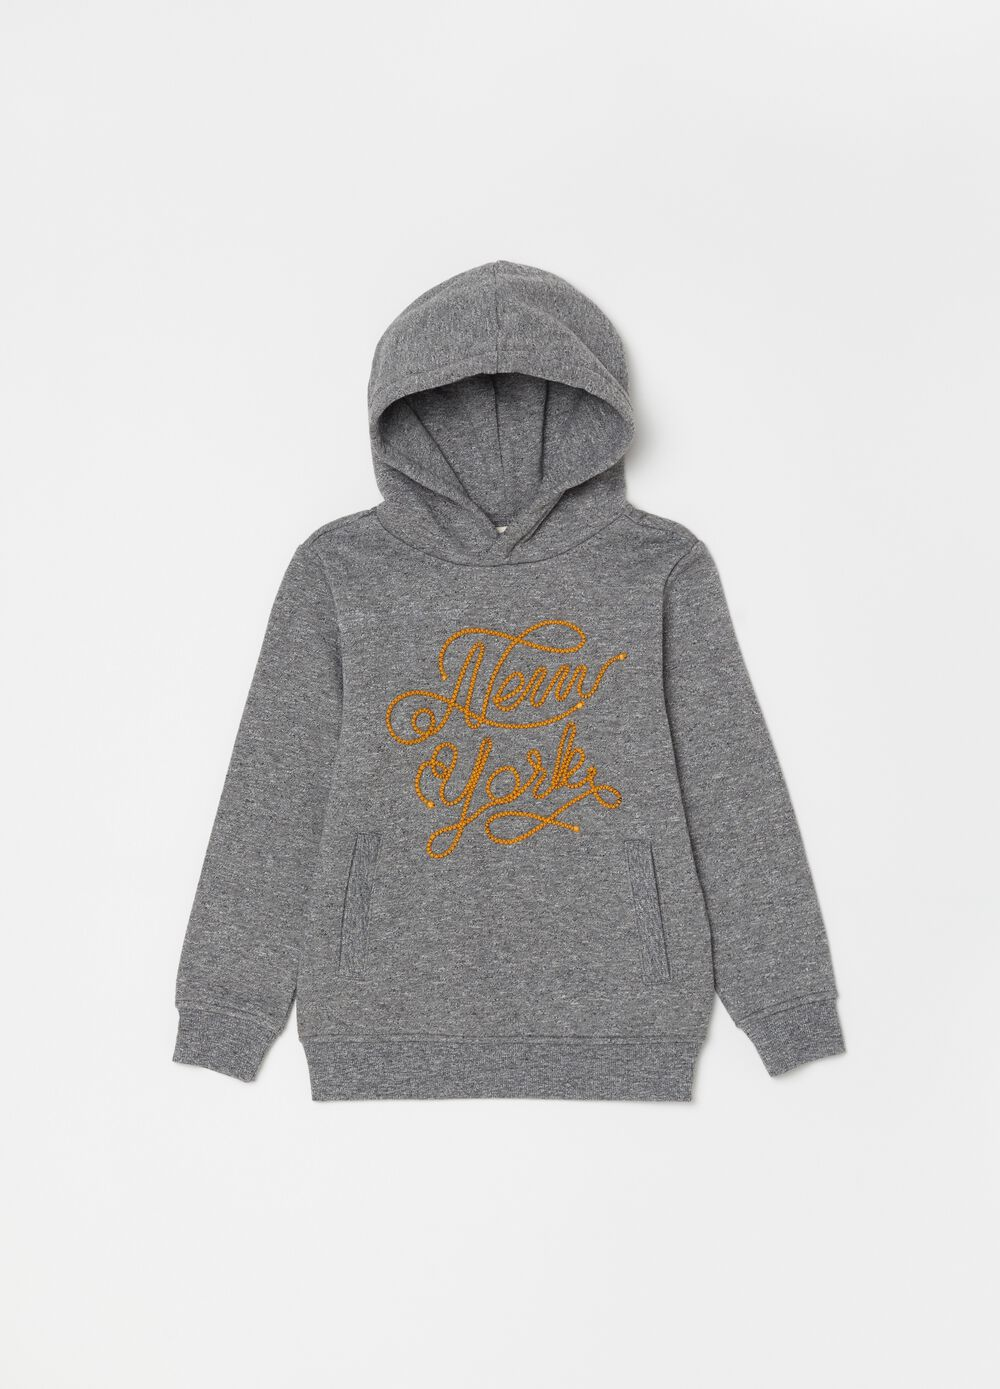 Mélange sweatshirt with lettering embroidery